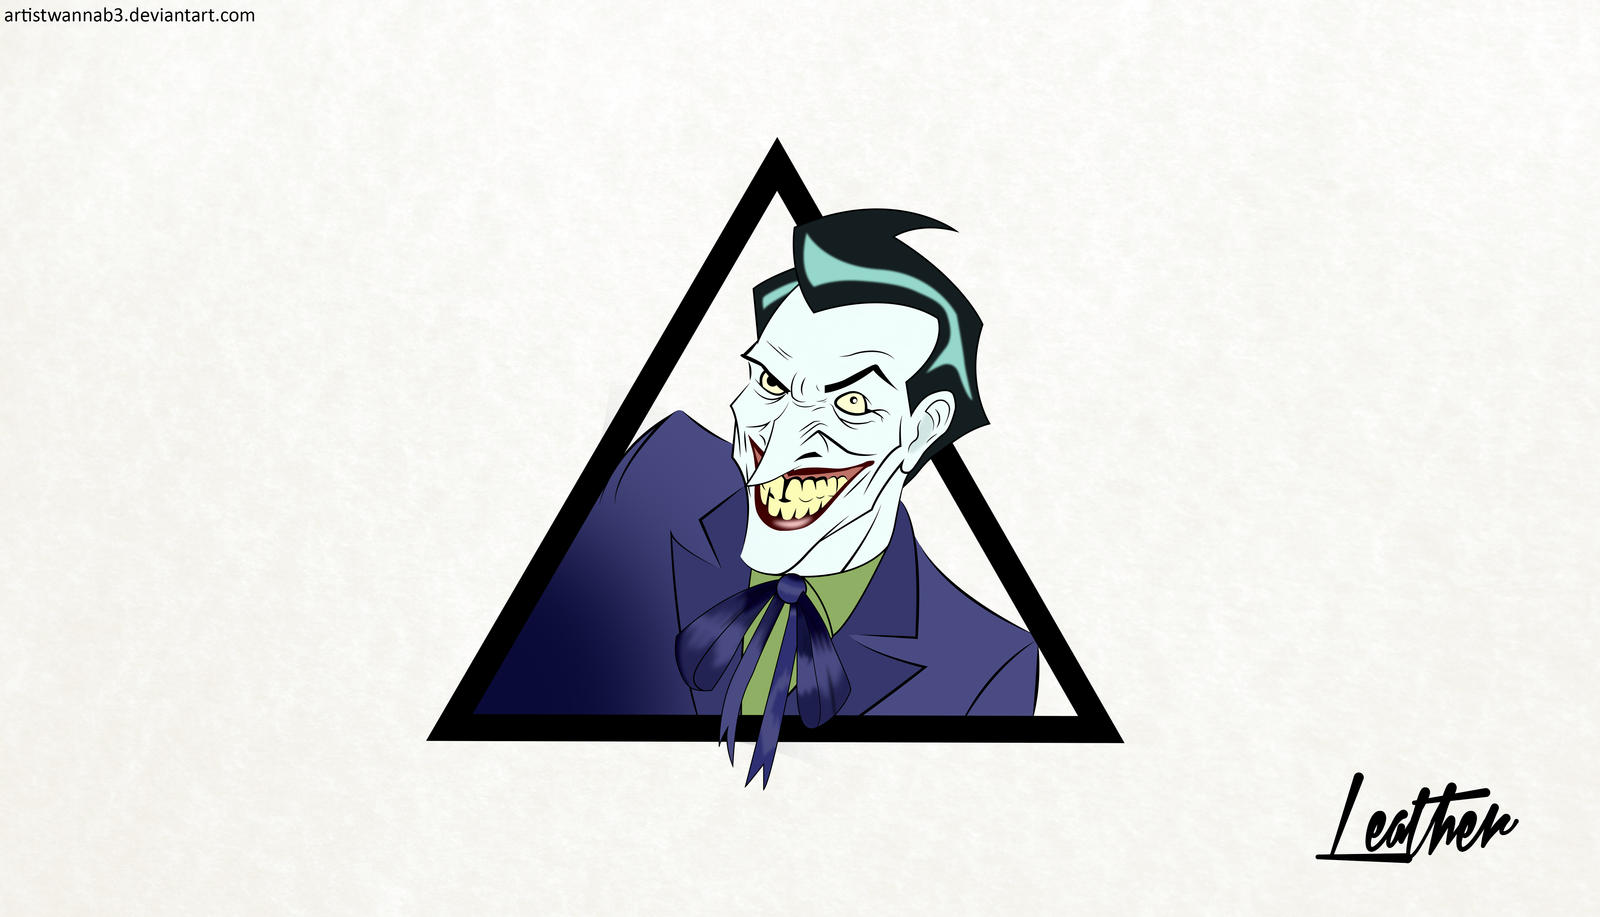 Joker Hd Wallpaper By Artistwannab3 On Deviantart